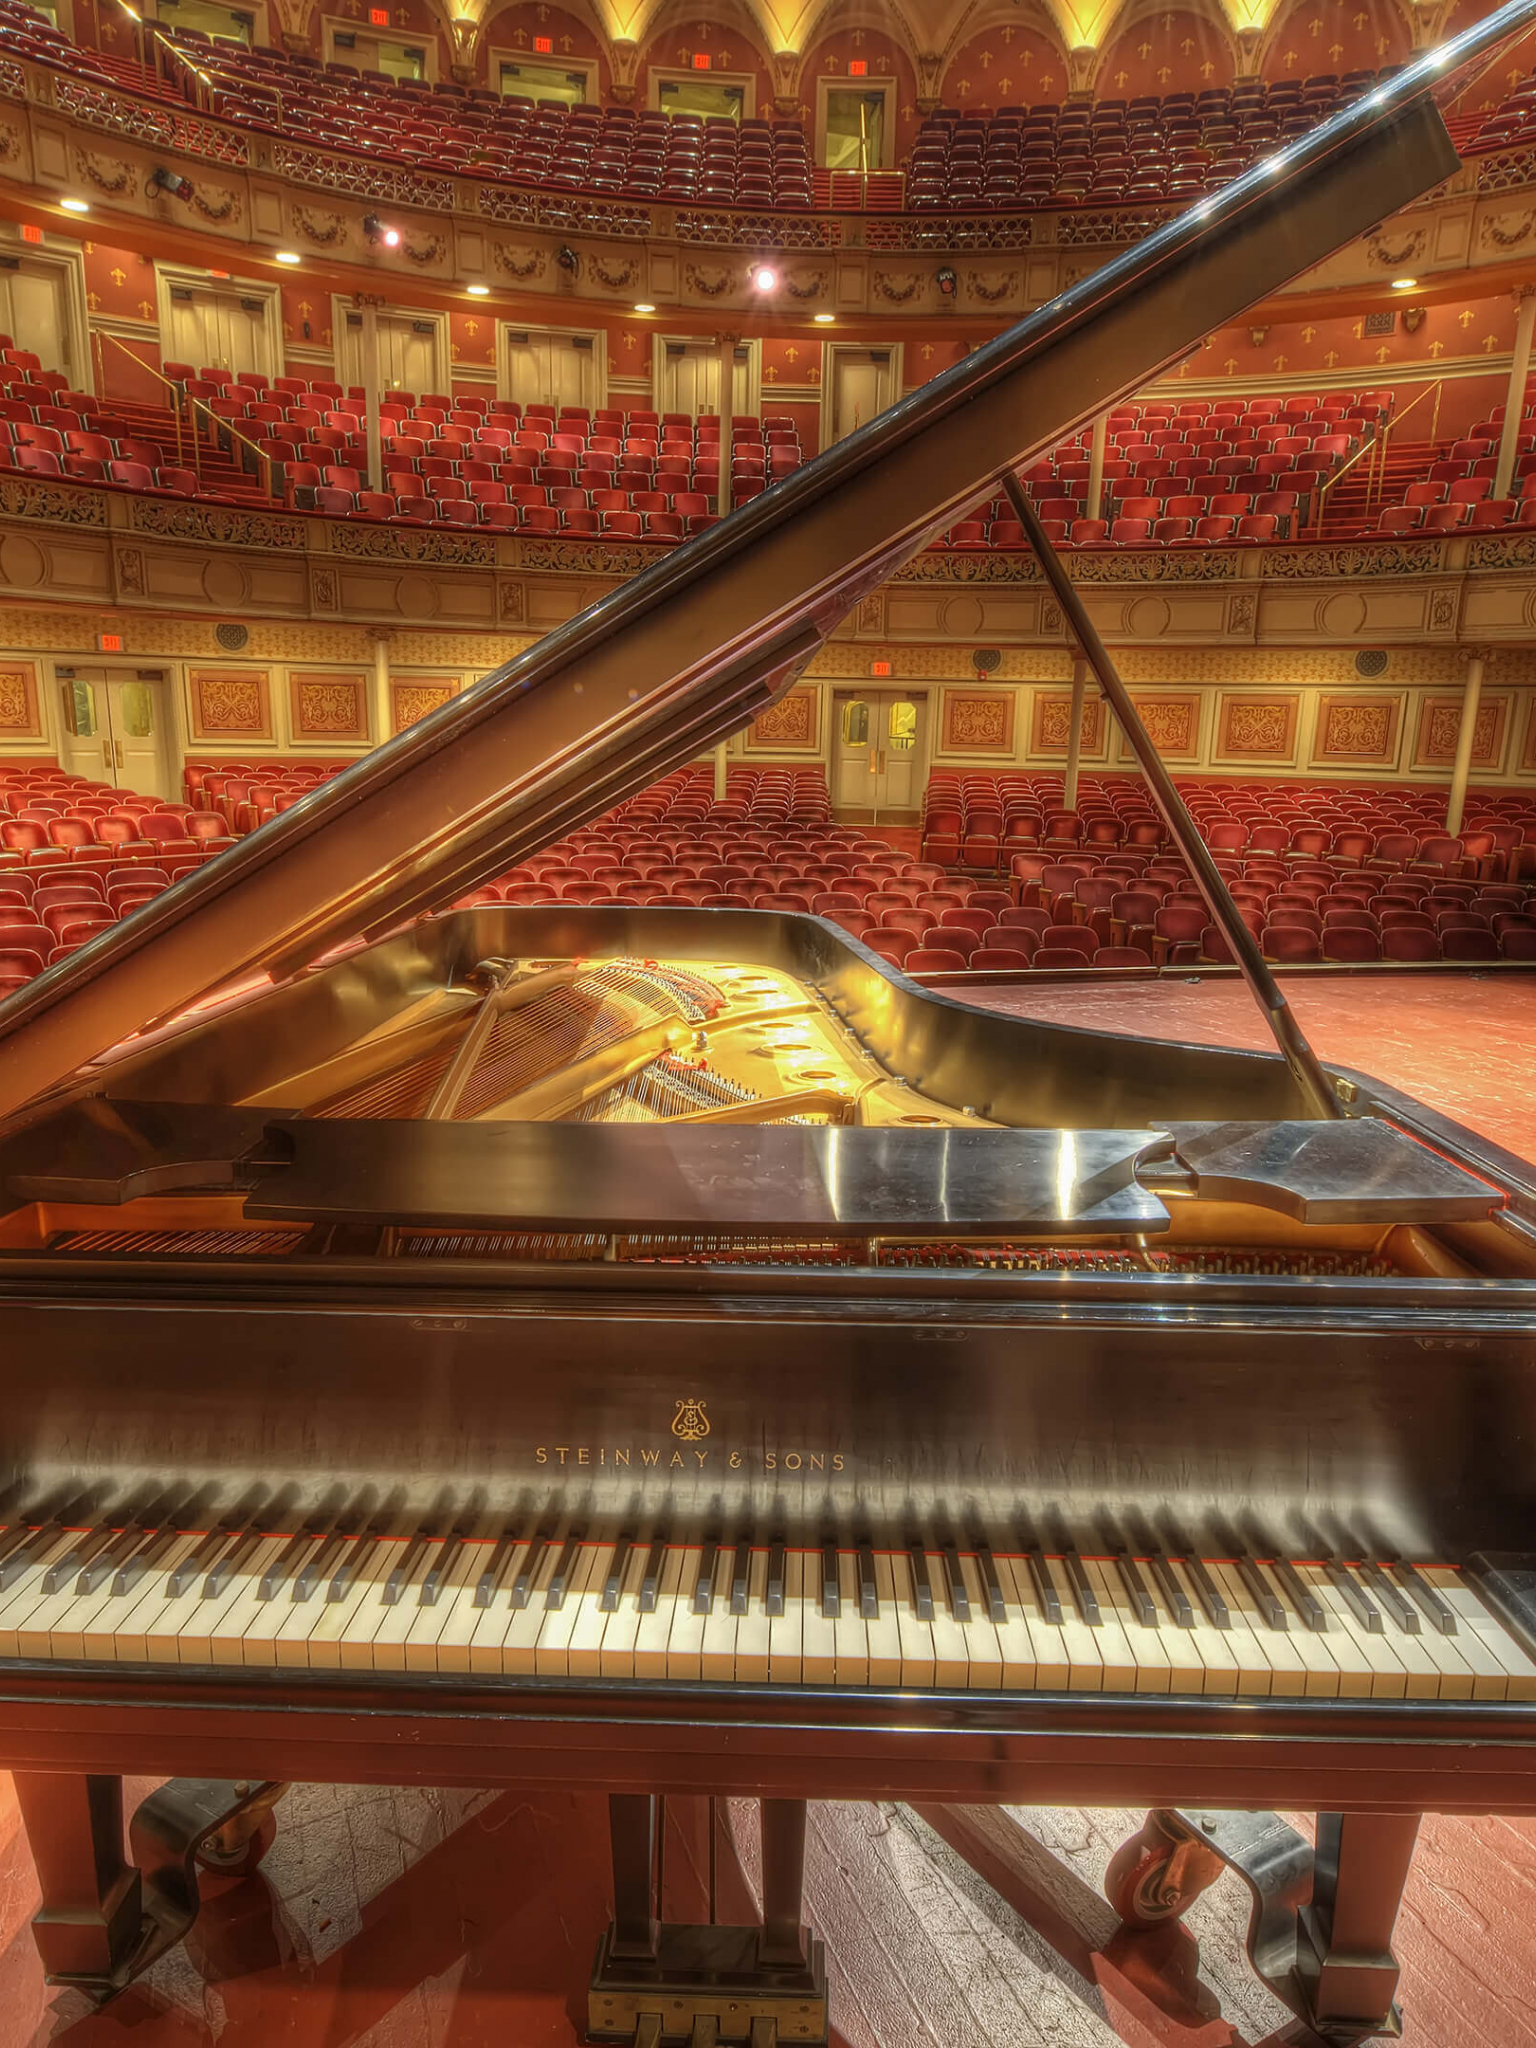 Free Download Steinway Sons Piano At Carnegie Music Hall